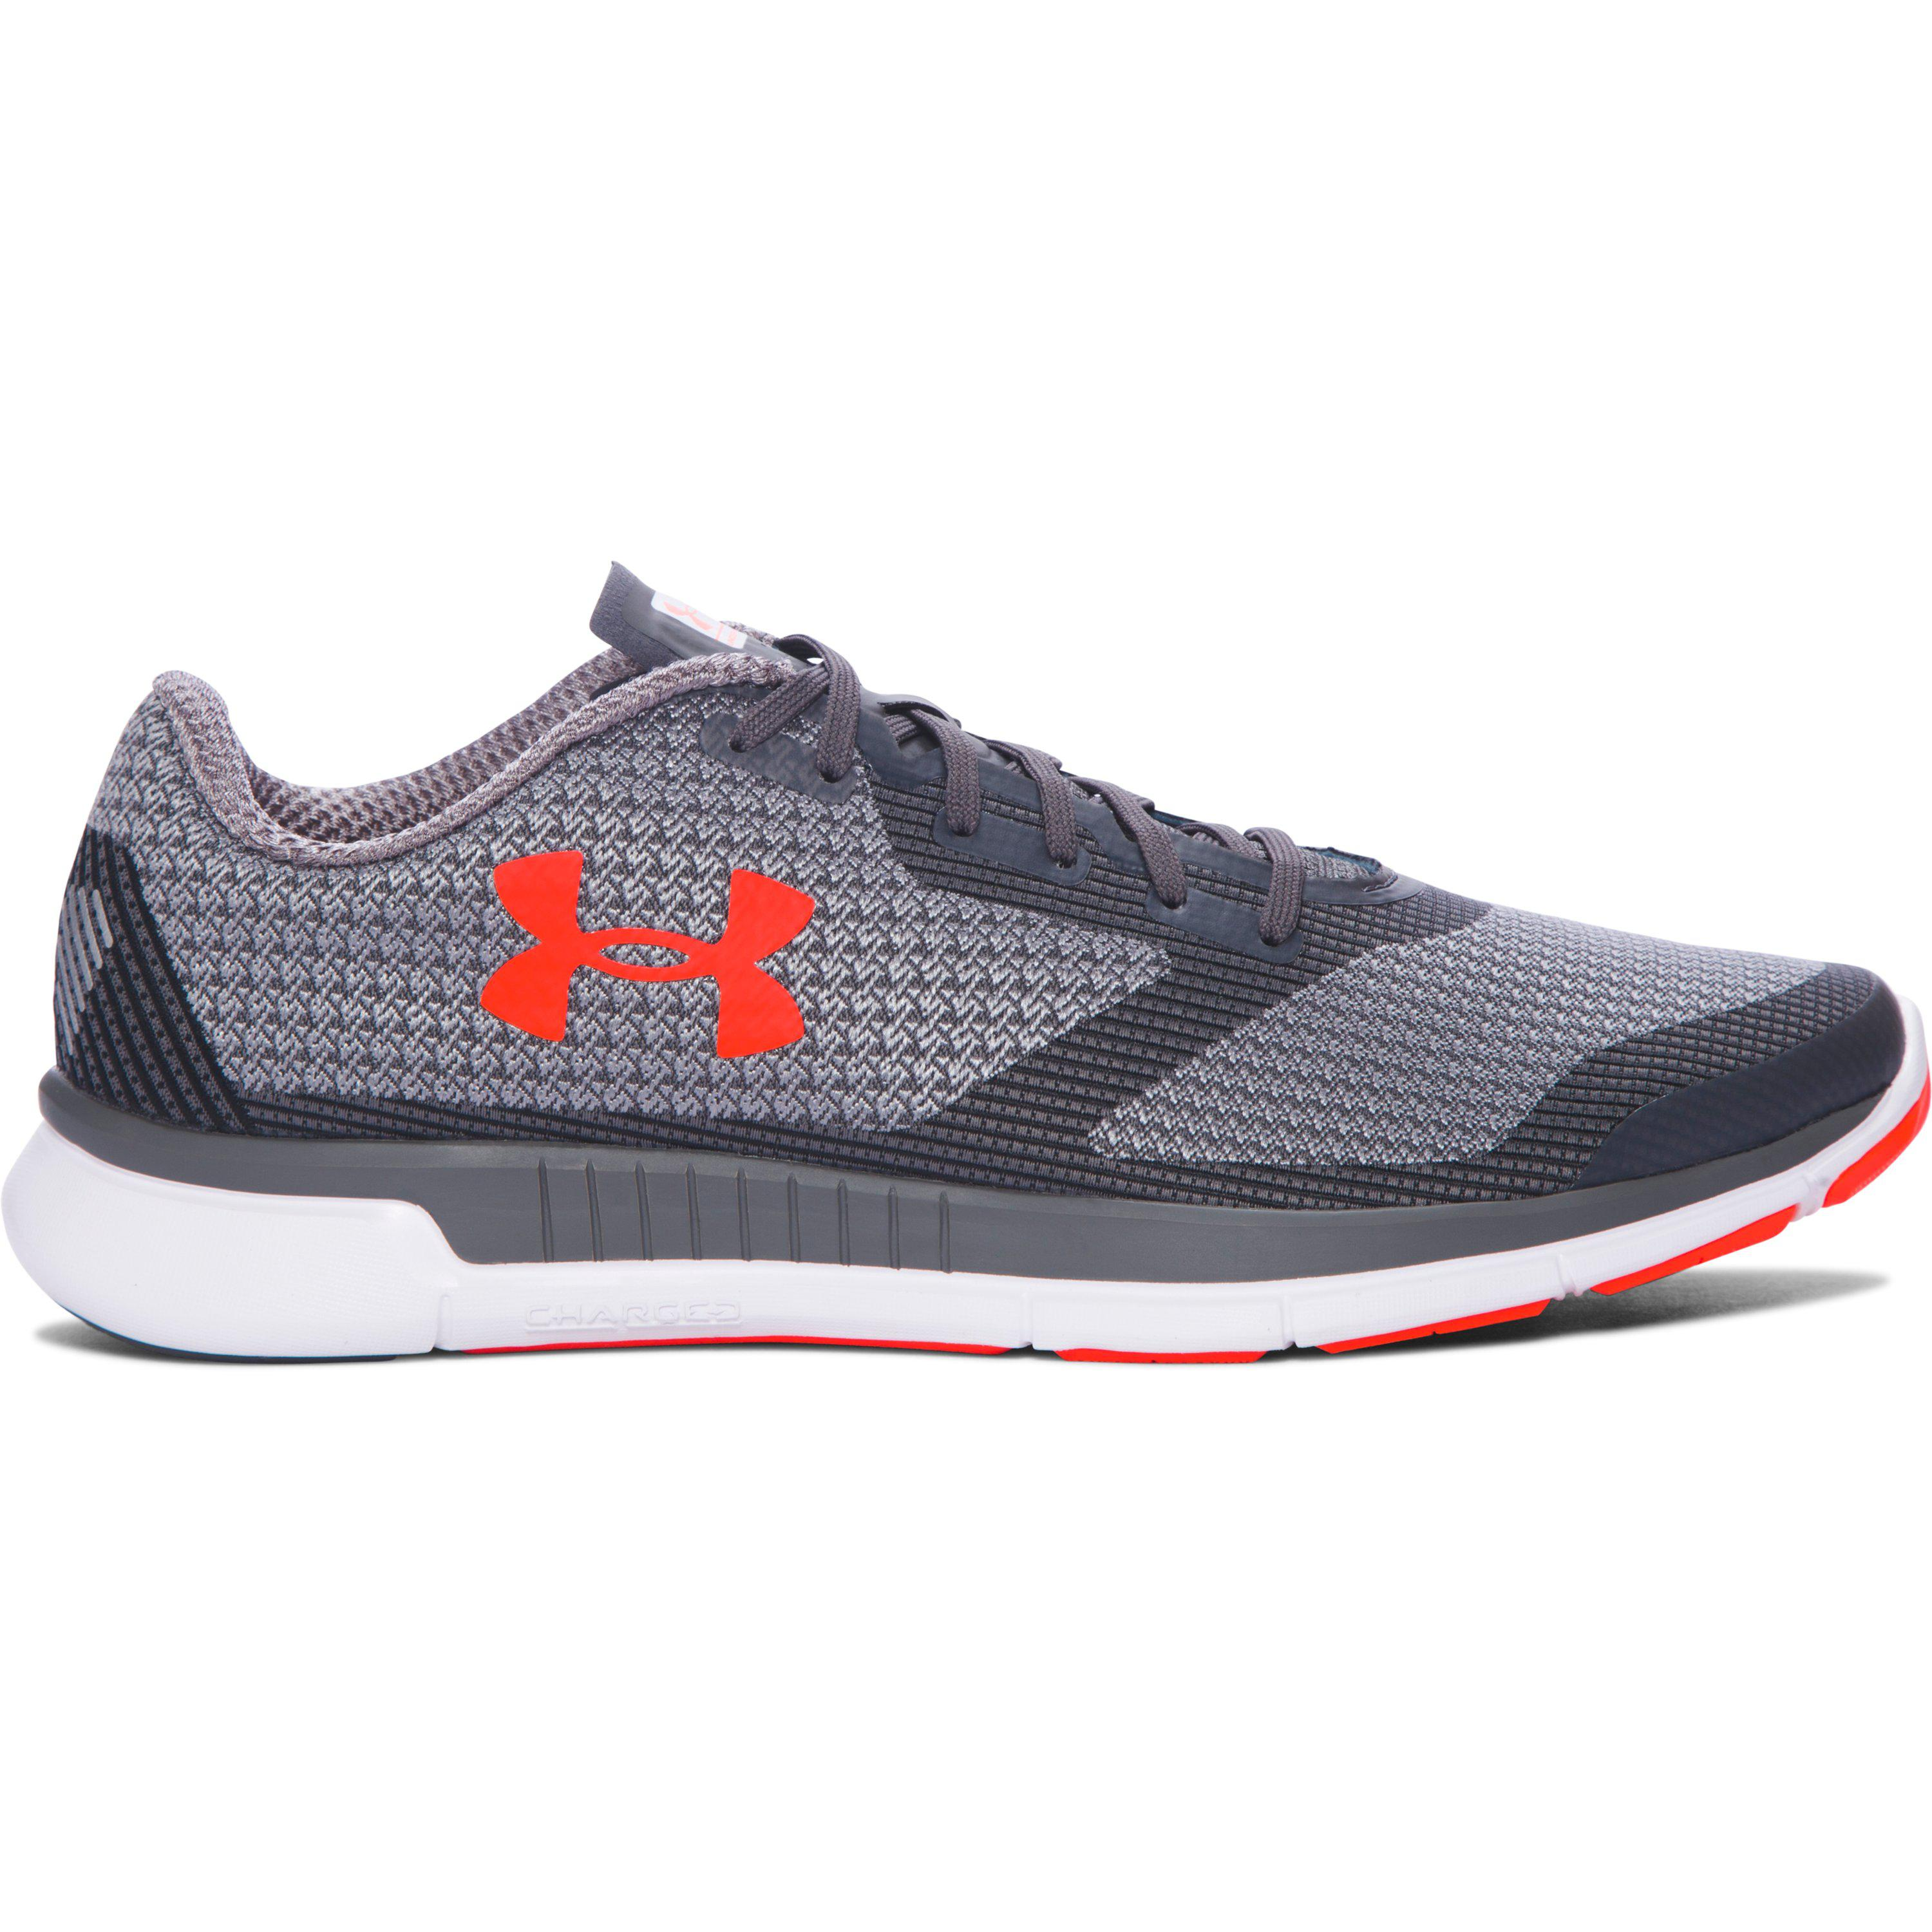 Under Armour. Men's Gray Charged Lightning Training Shoes